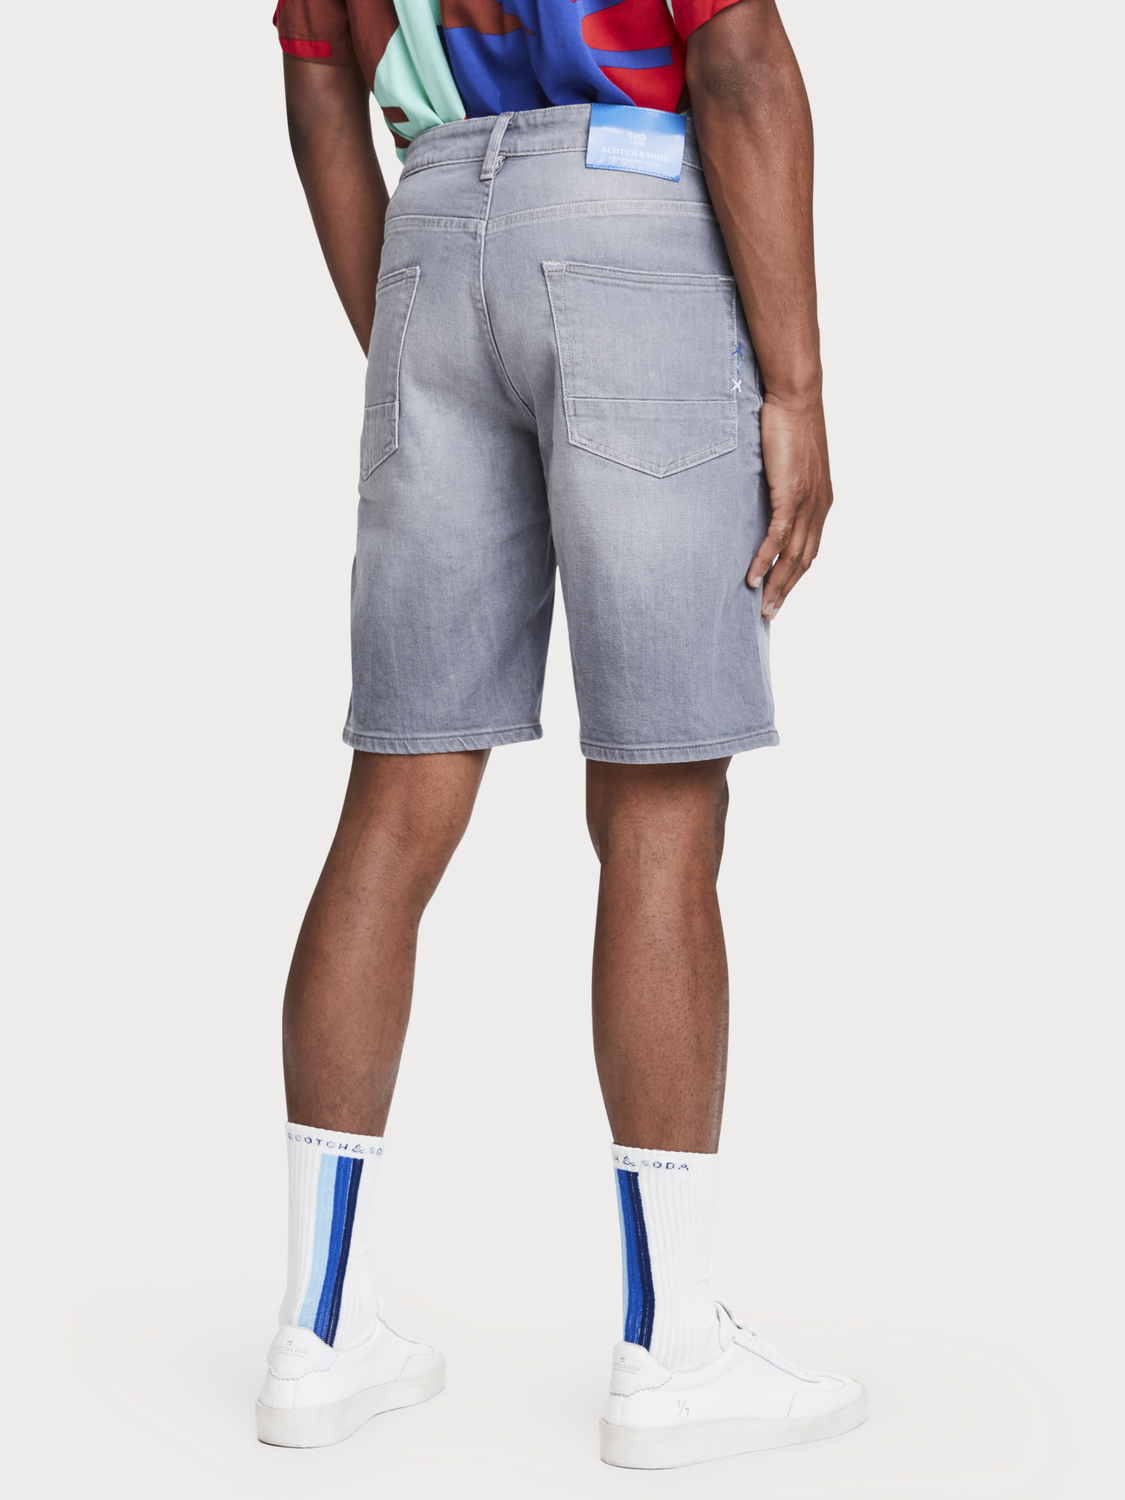 Herrar Ralston Short - Stone and Sand | Shorts i stretchdenim